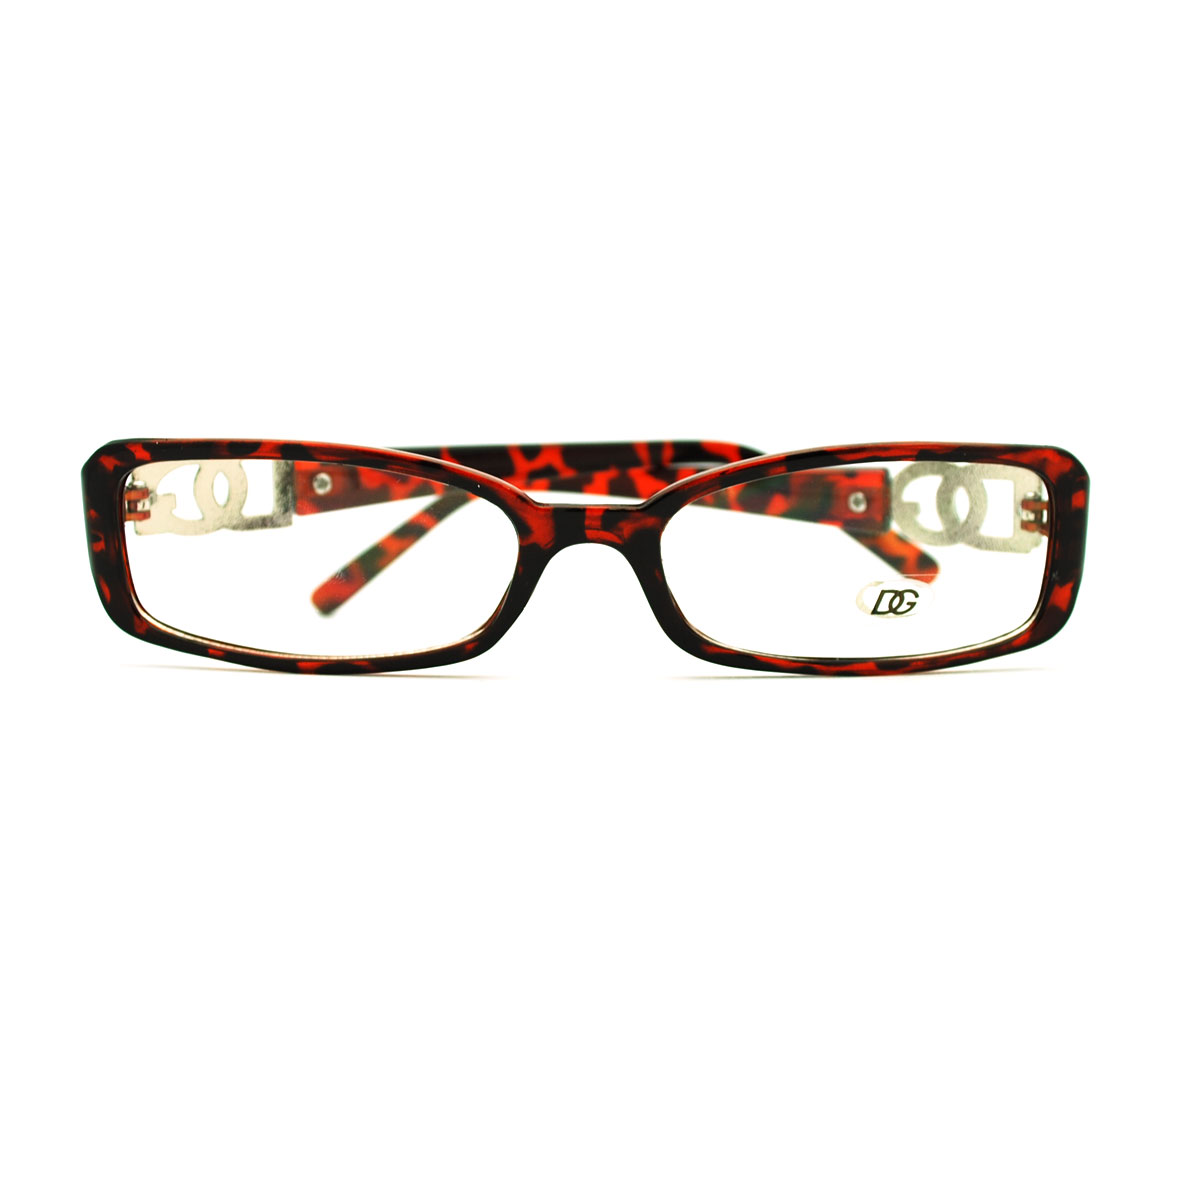 Glasses Frames Too Narrow : Womens Sexy Extra Narrow Rectangular Plastic Frame Eye ...